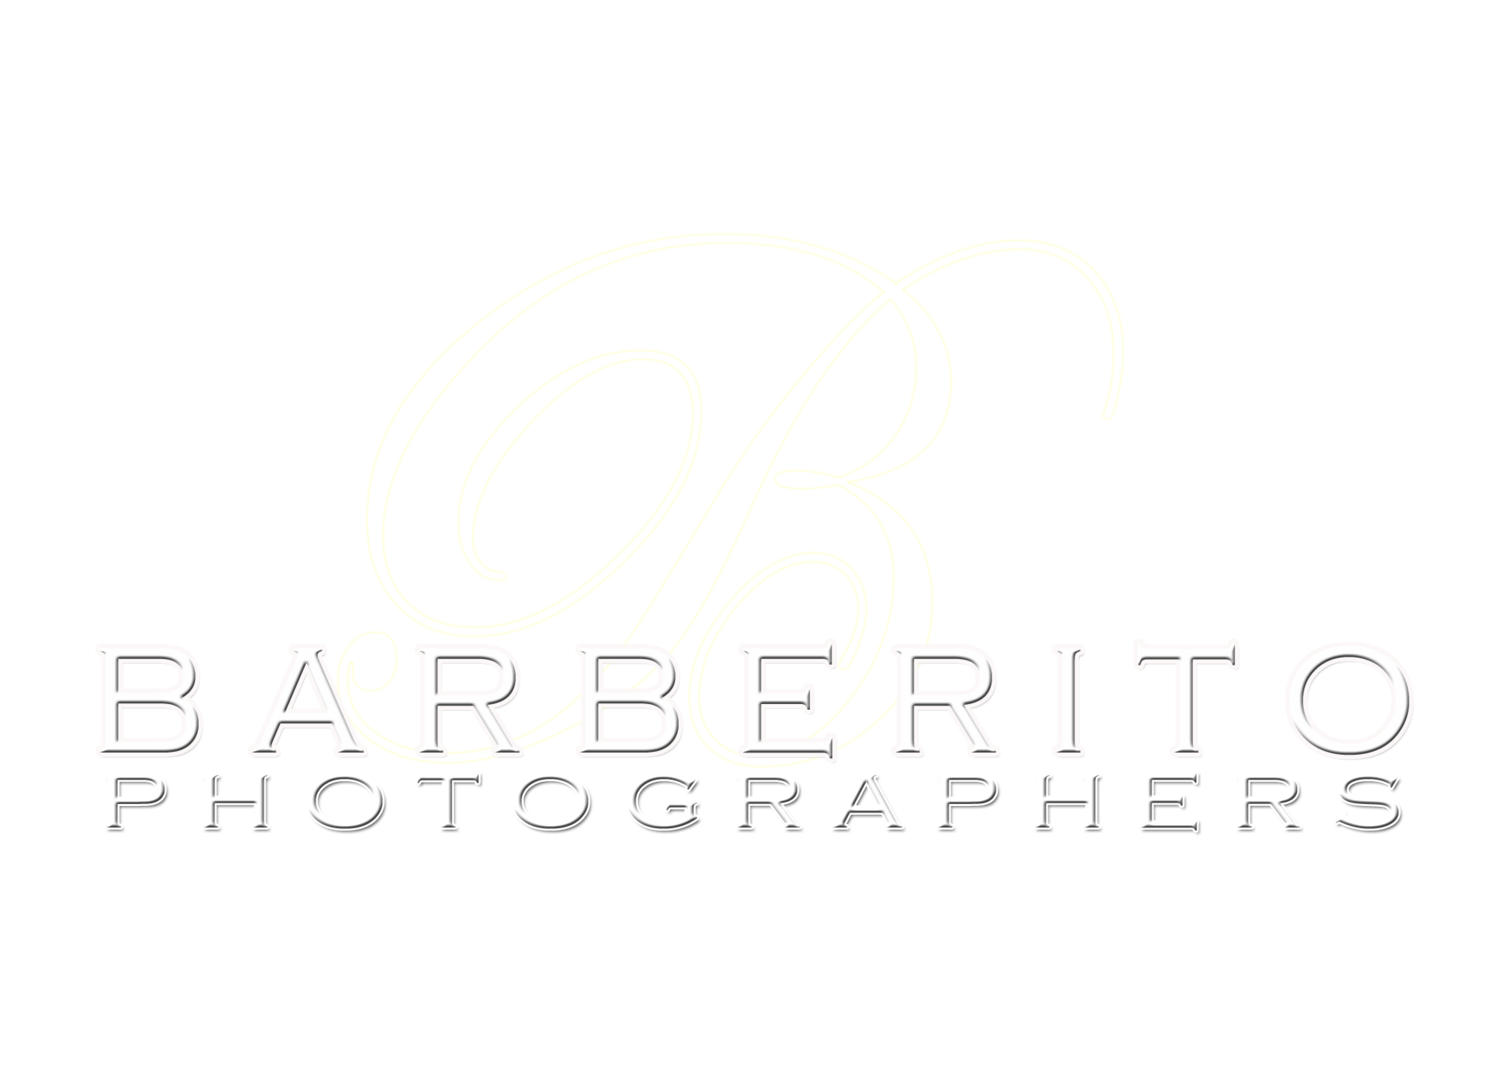 Barberito Photographers